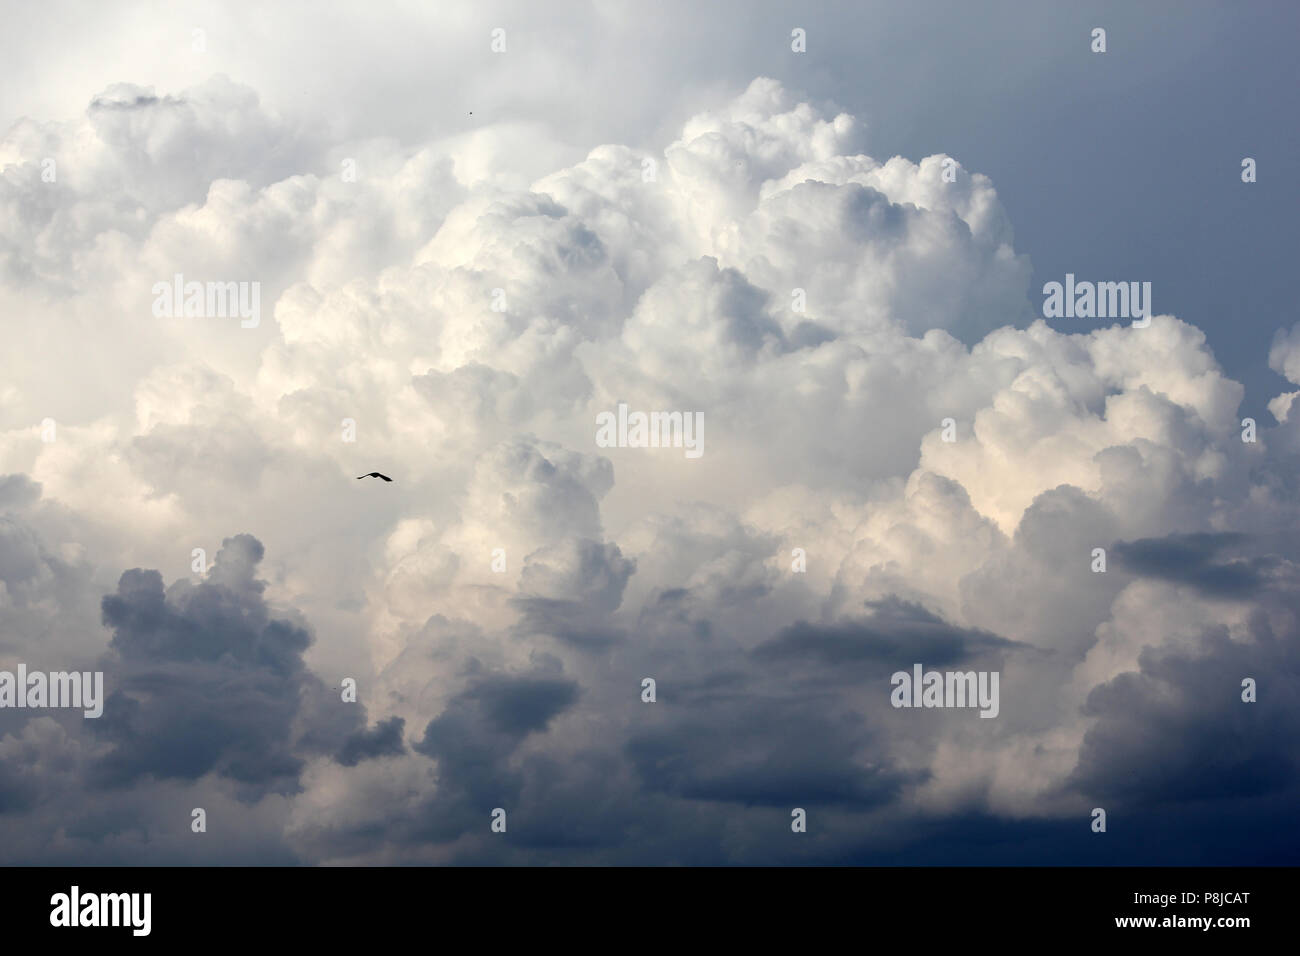 Bird soaring among stormy clouds. Dramatic stormy clouds before rain. Weather background. - Stock Image